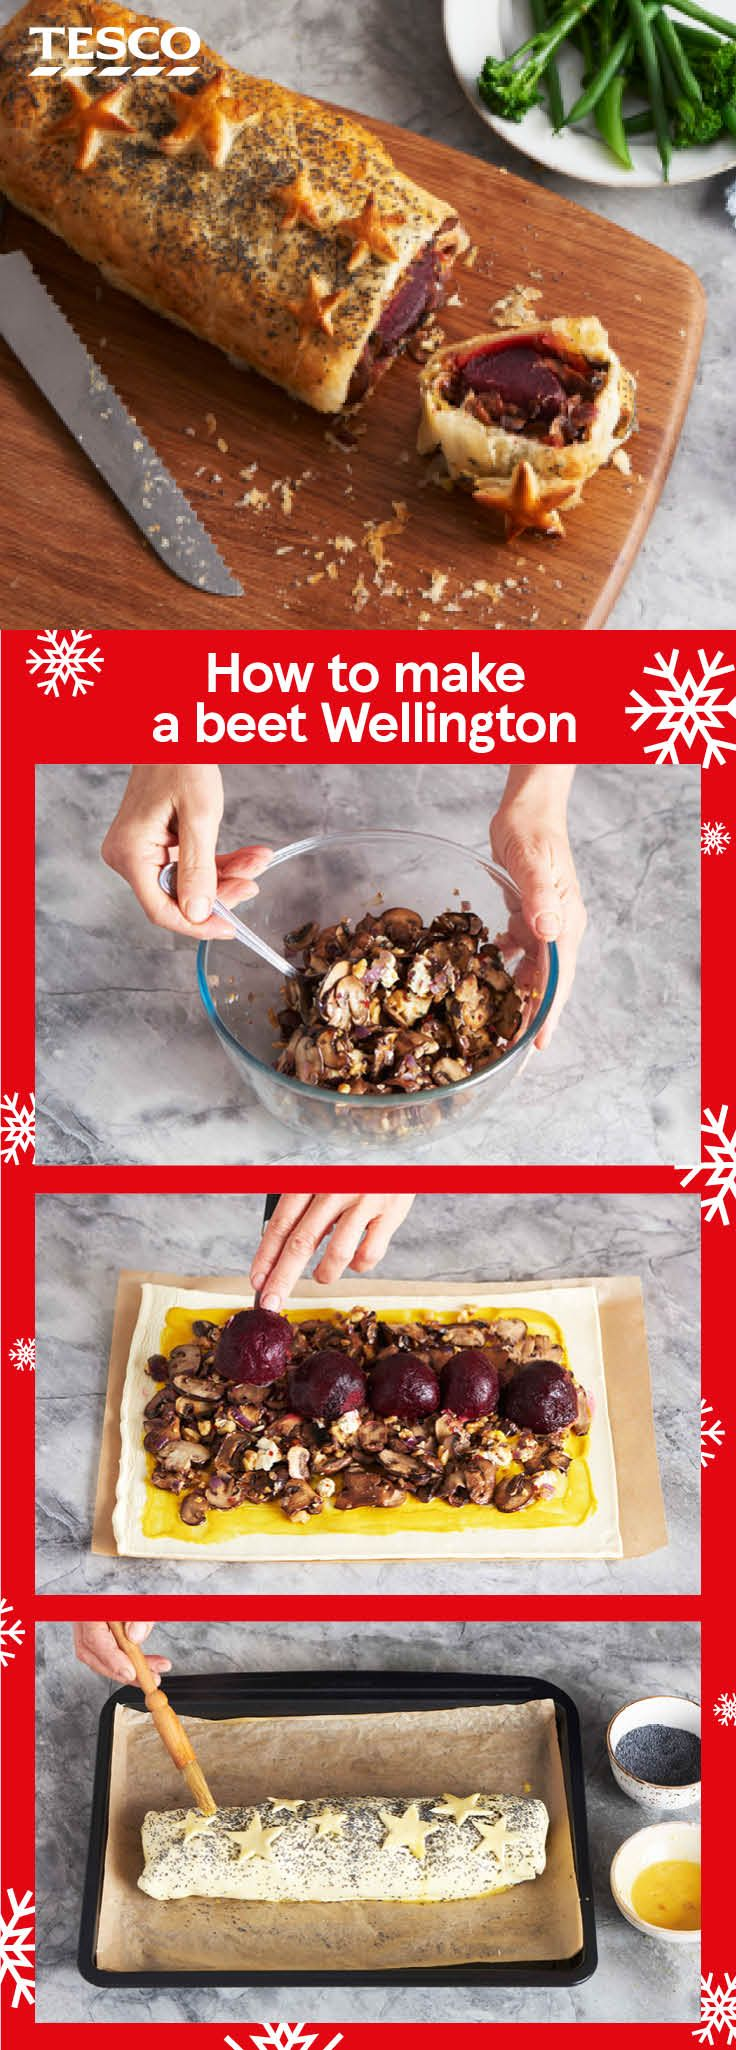 For an impressive veggie main this Christmas, follow our step-by-step guide to making a hearty beetroot Wellington. Like the classic recipe, flaky puff pastry encases a mushroom and blue cheese layer before revealing a vibrant beetroot centre.   Tesco